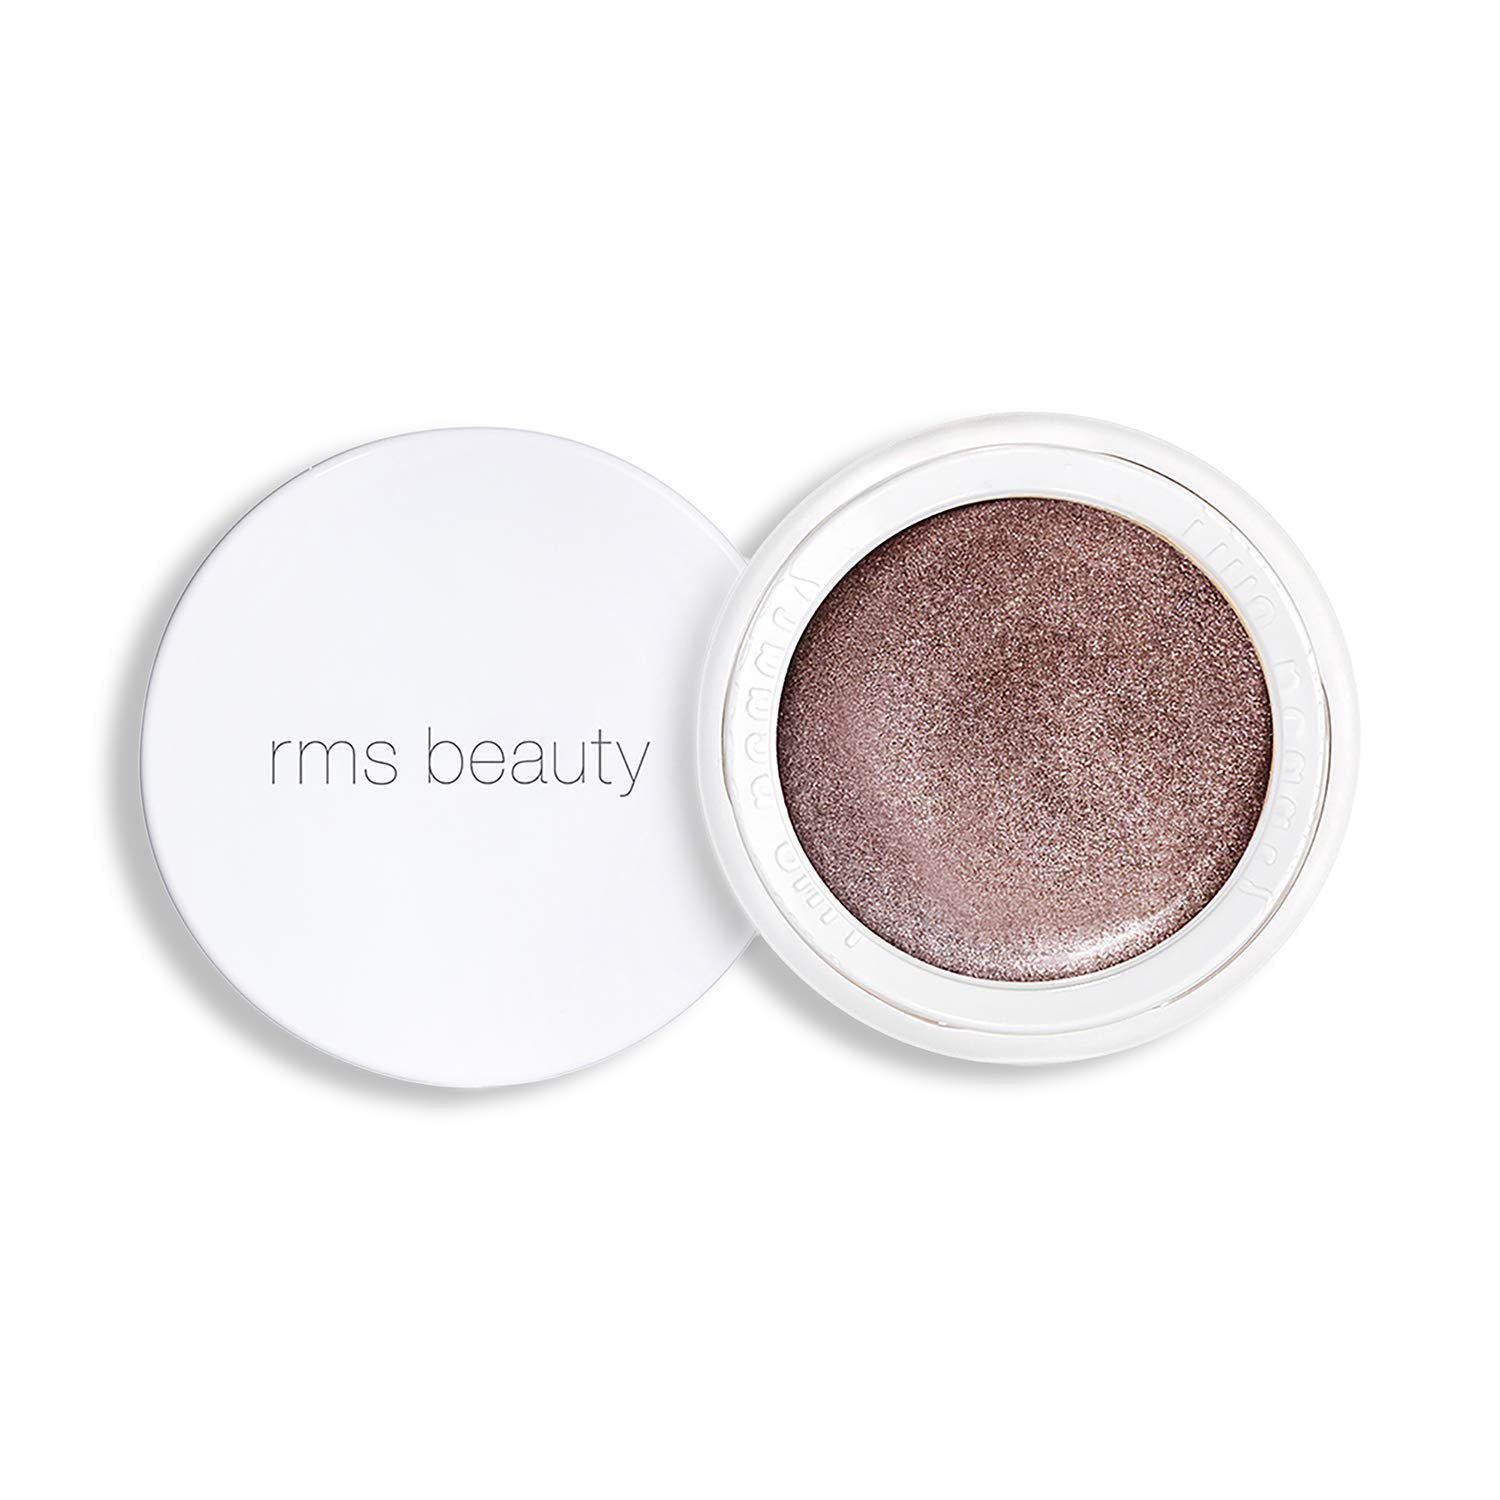 RMS Beauty Eye Polish - Natural Cream Eyeshadow Makeup Formulated with Natural & Moisturizing Base, Cruelty-Free - Magnetic (4.25g/0.15oz)